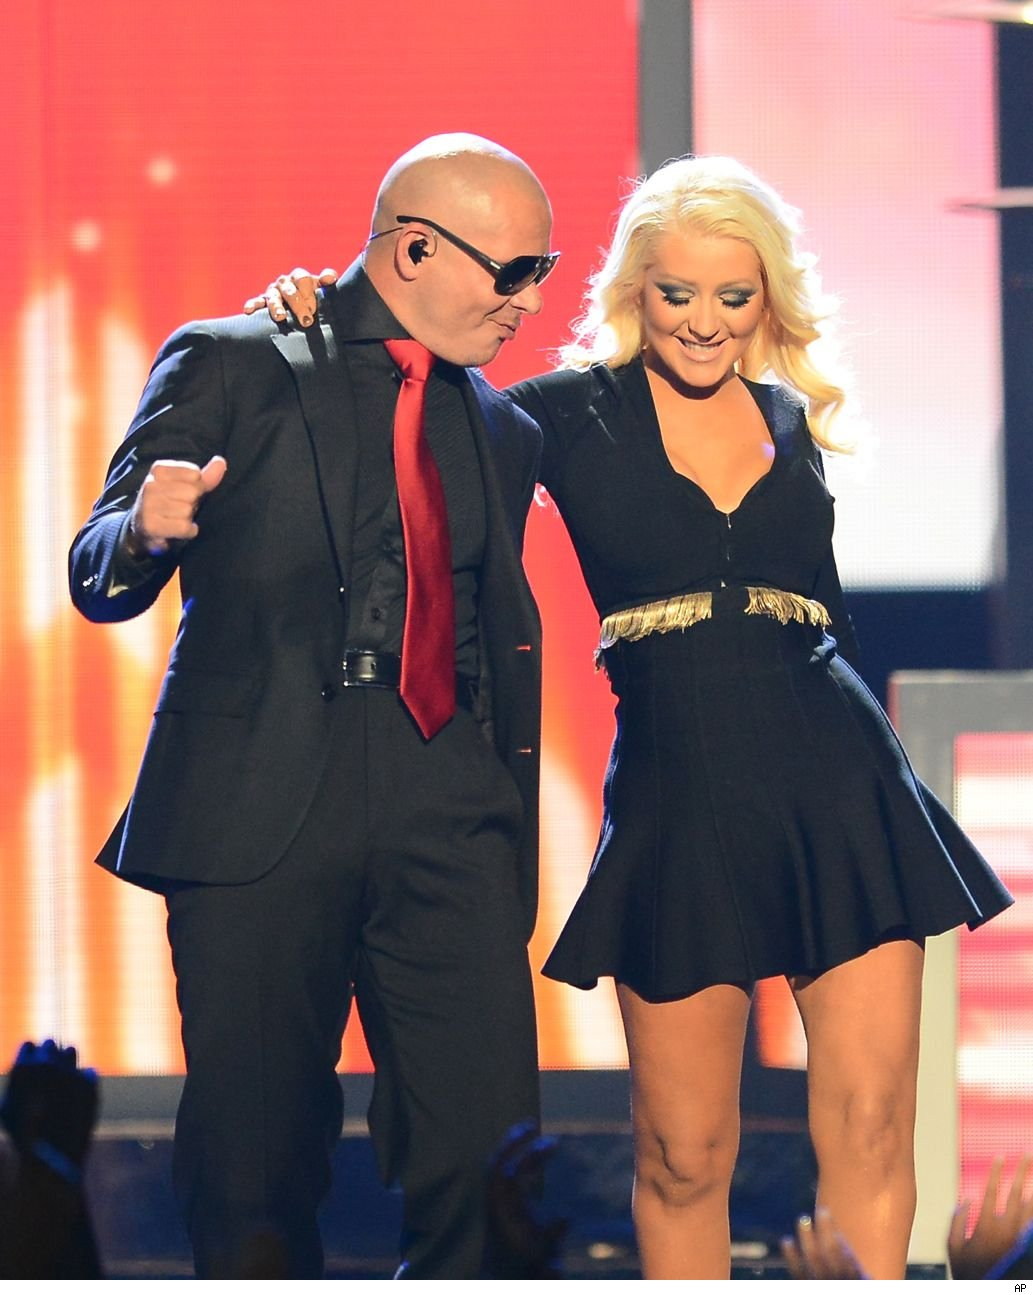 Christina Aguilera weight loss Billboard Music Awards 2013 Pitbull